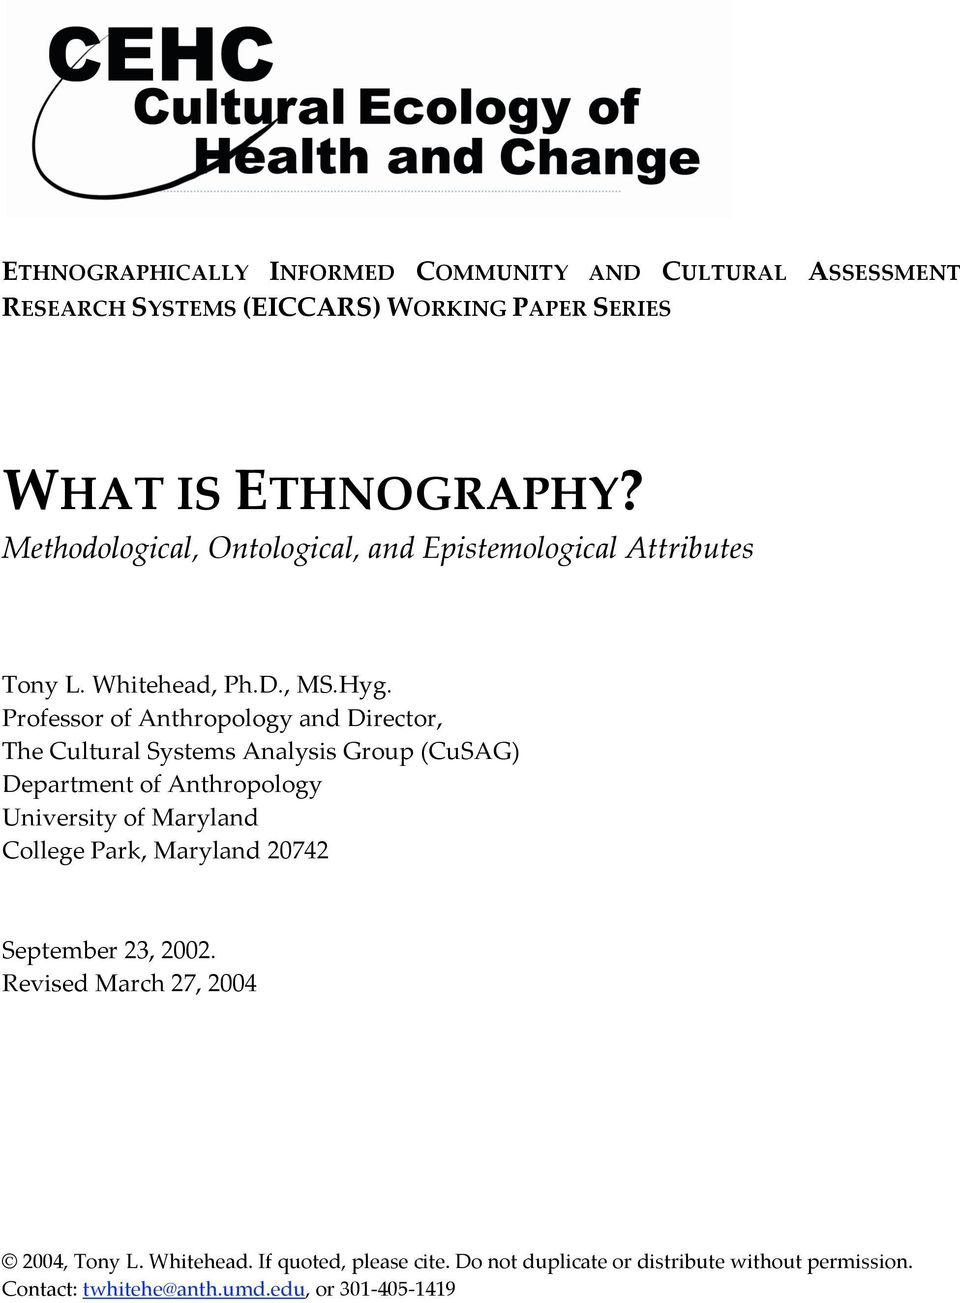 Ethnographic research proposal